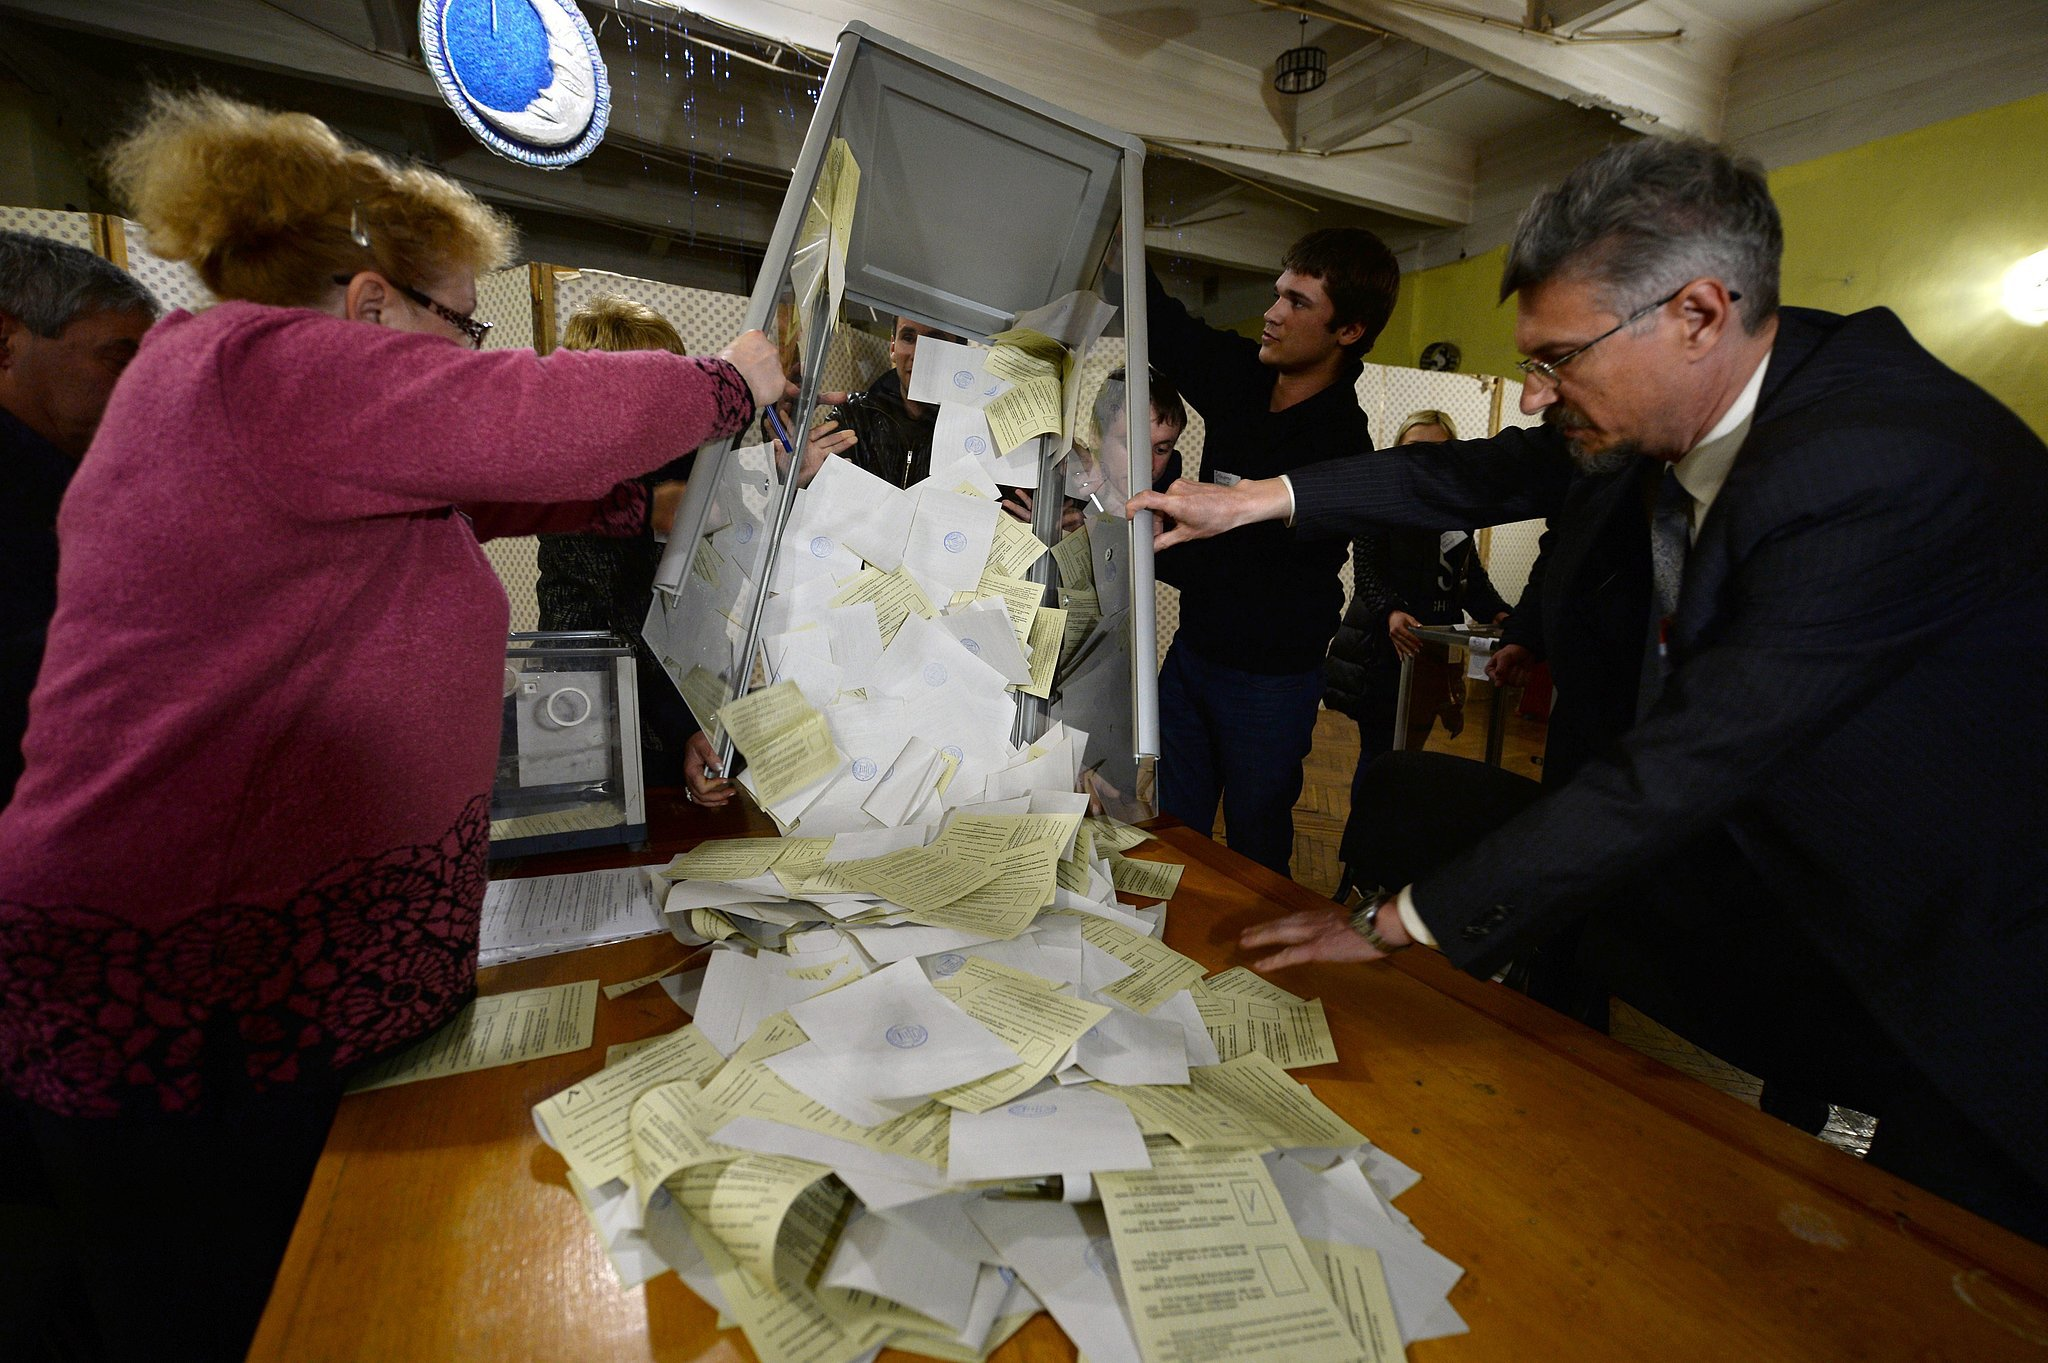 On Sunday, the vote went ahead despite international objections. Officials in Crimea said 97 percent of voters backed leaving Ukraine to join Russia. The referendum was called quickly by pro-Russia officials in the region.